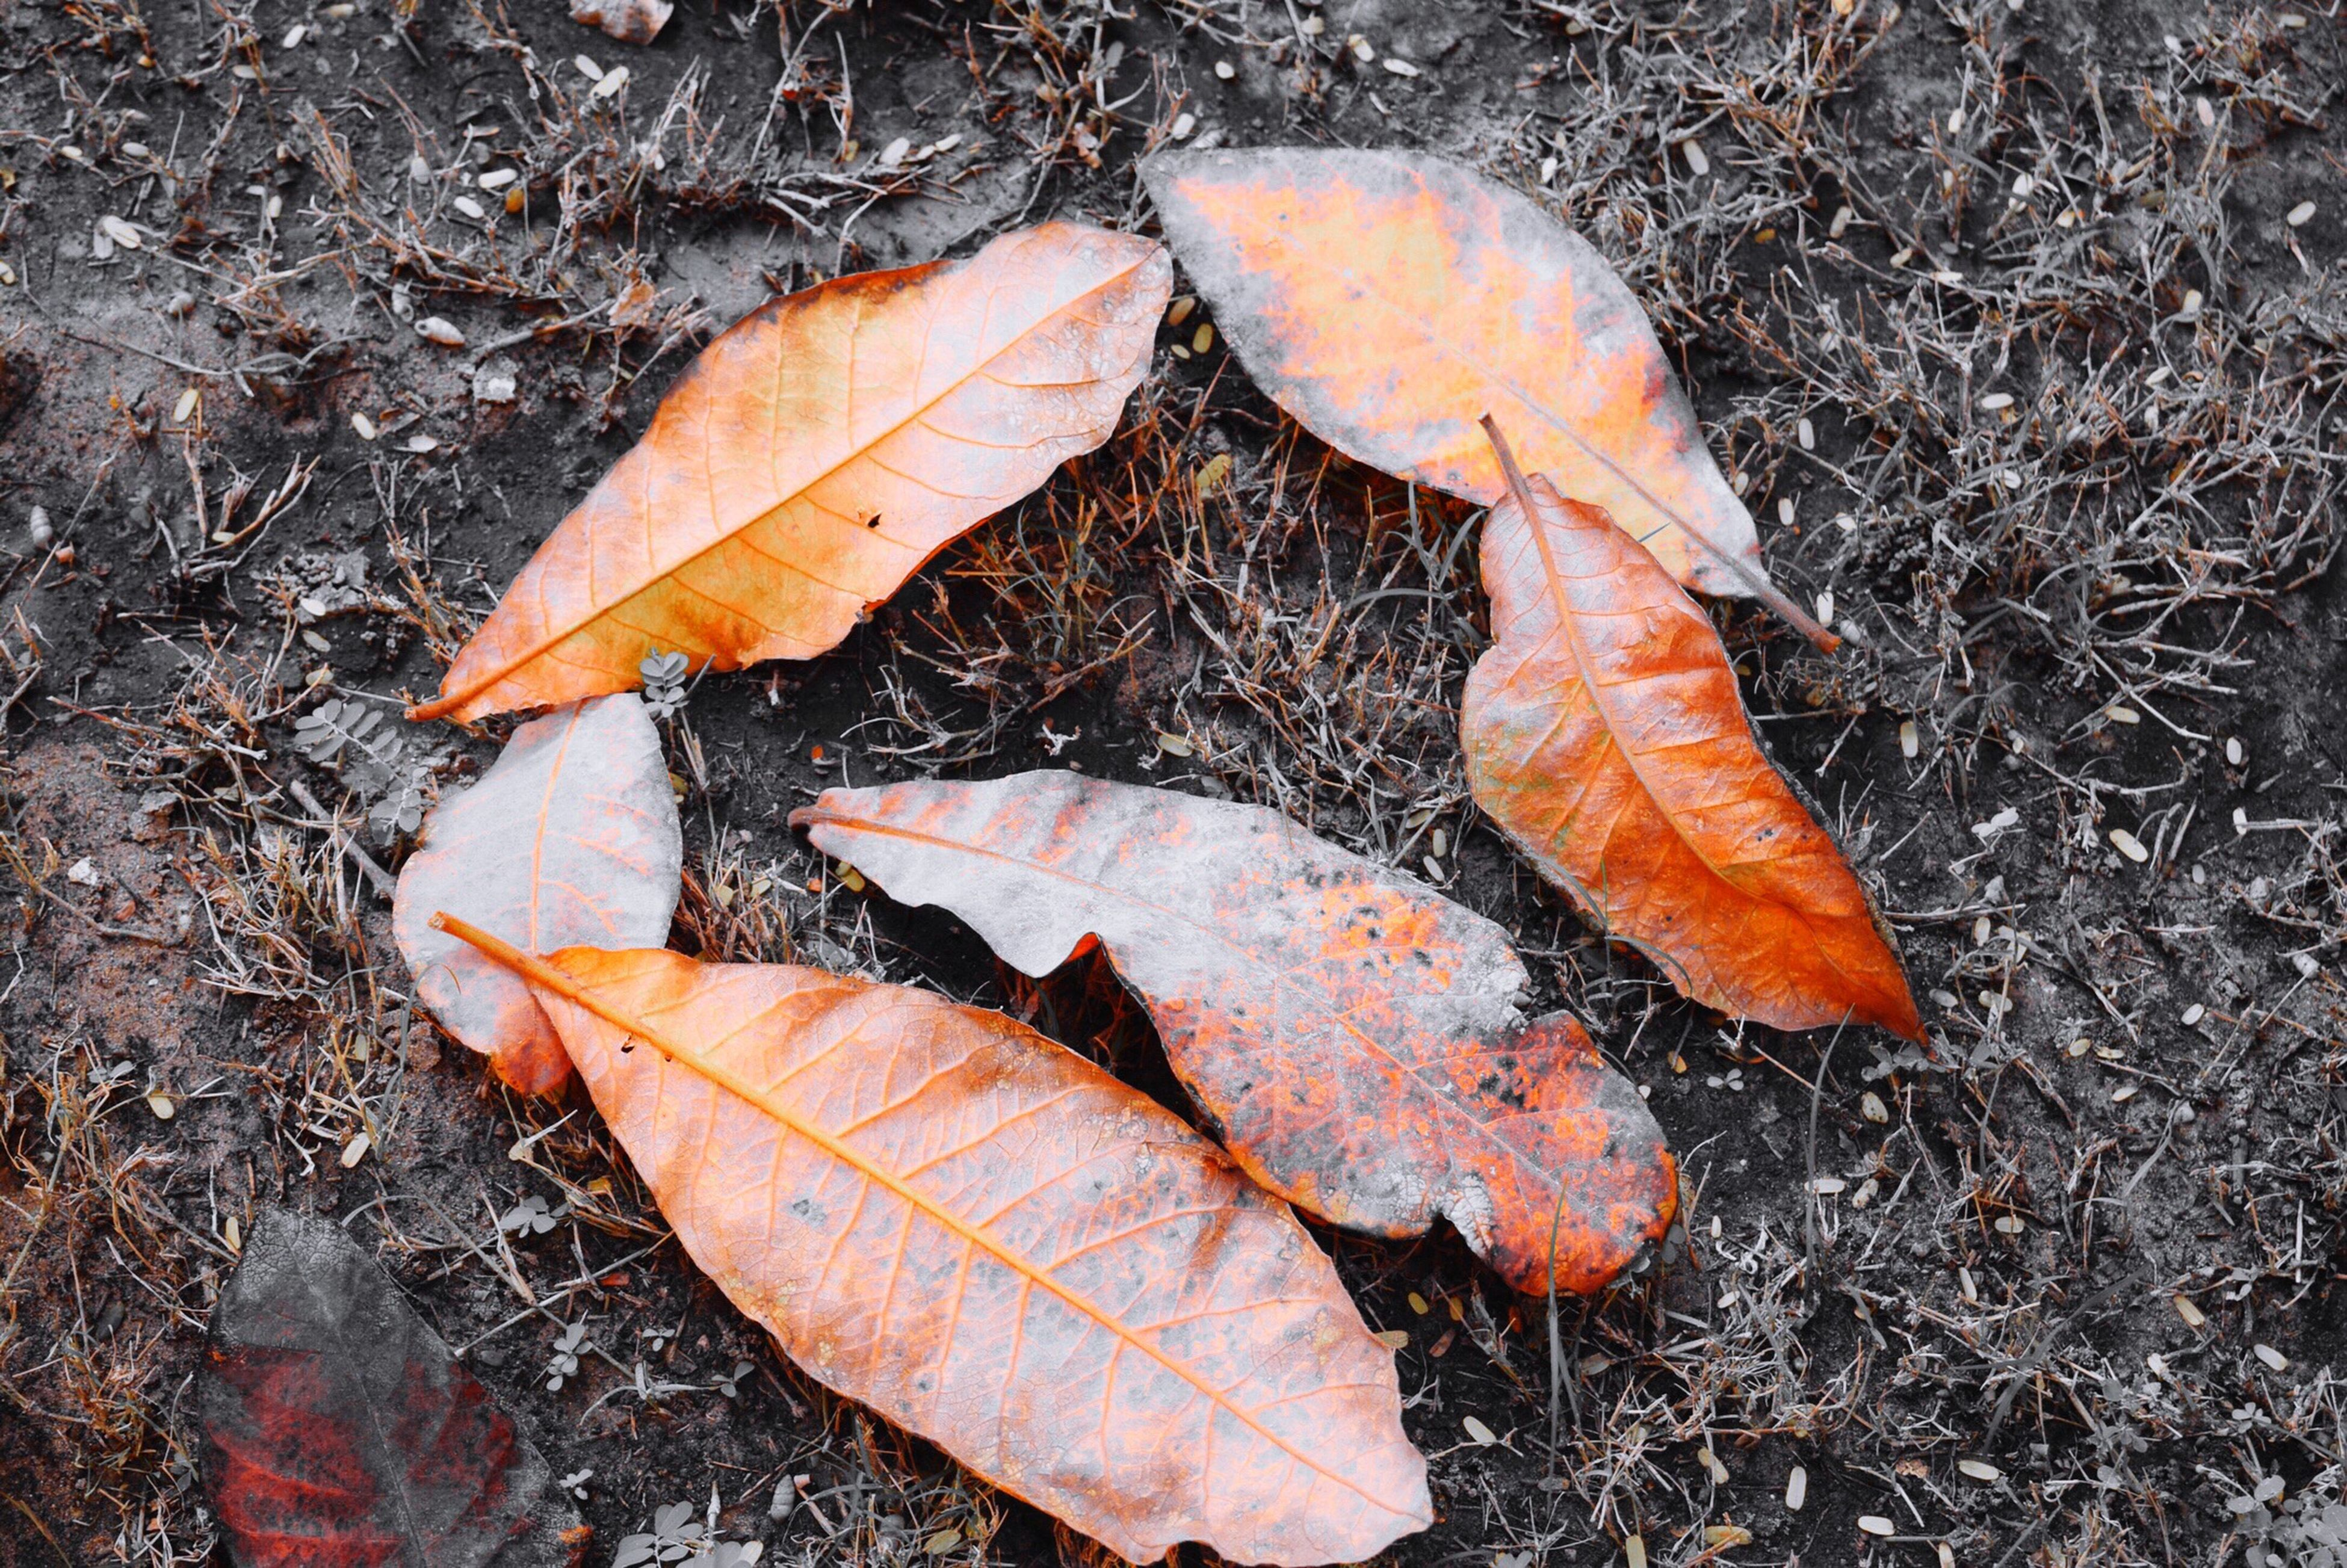 autumn, change, leaf, season, dry, leaves, fallen, high angle view, maple leaf, nature, orange color, close-up, field, ground, leaf vein, aging process, grass, natural condition, fragility, day